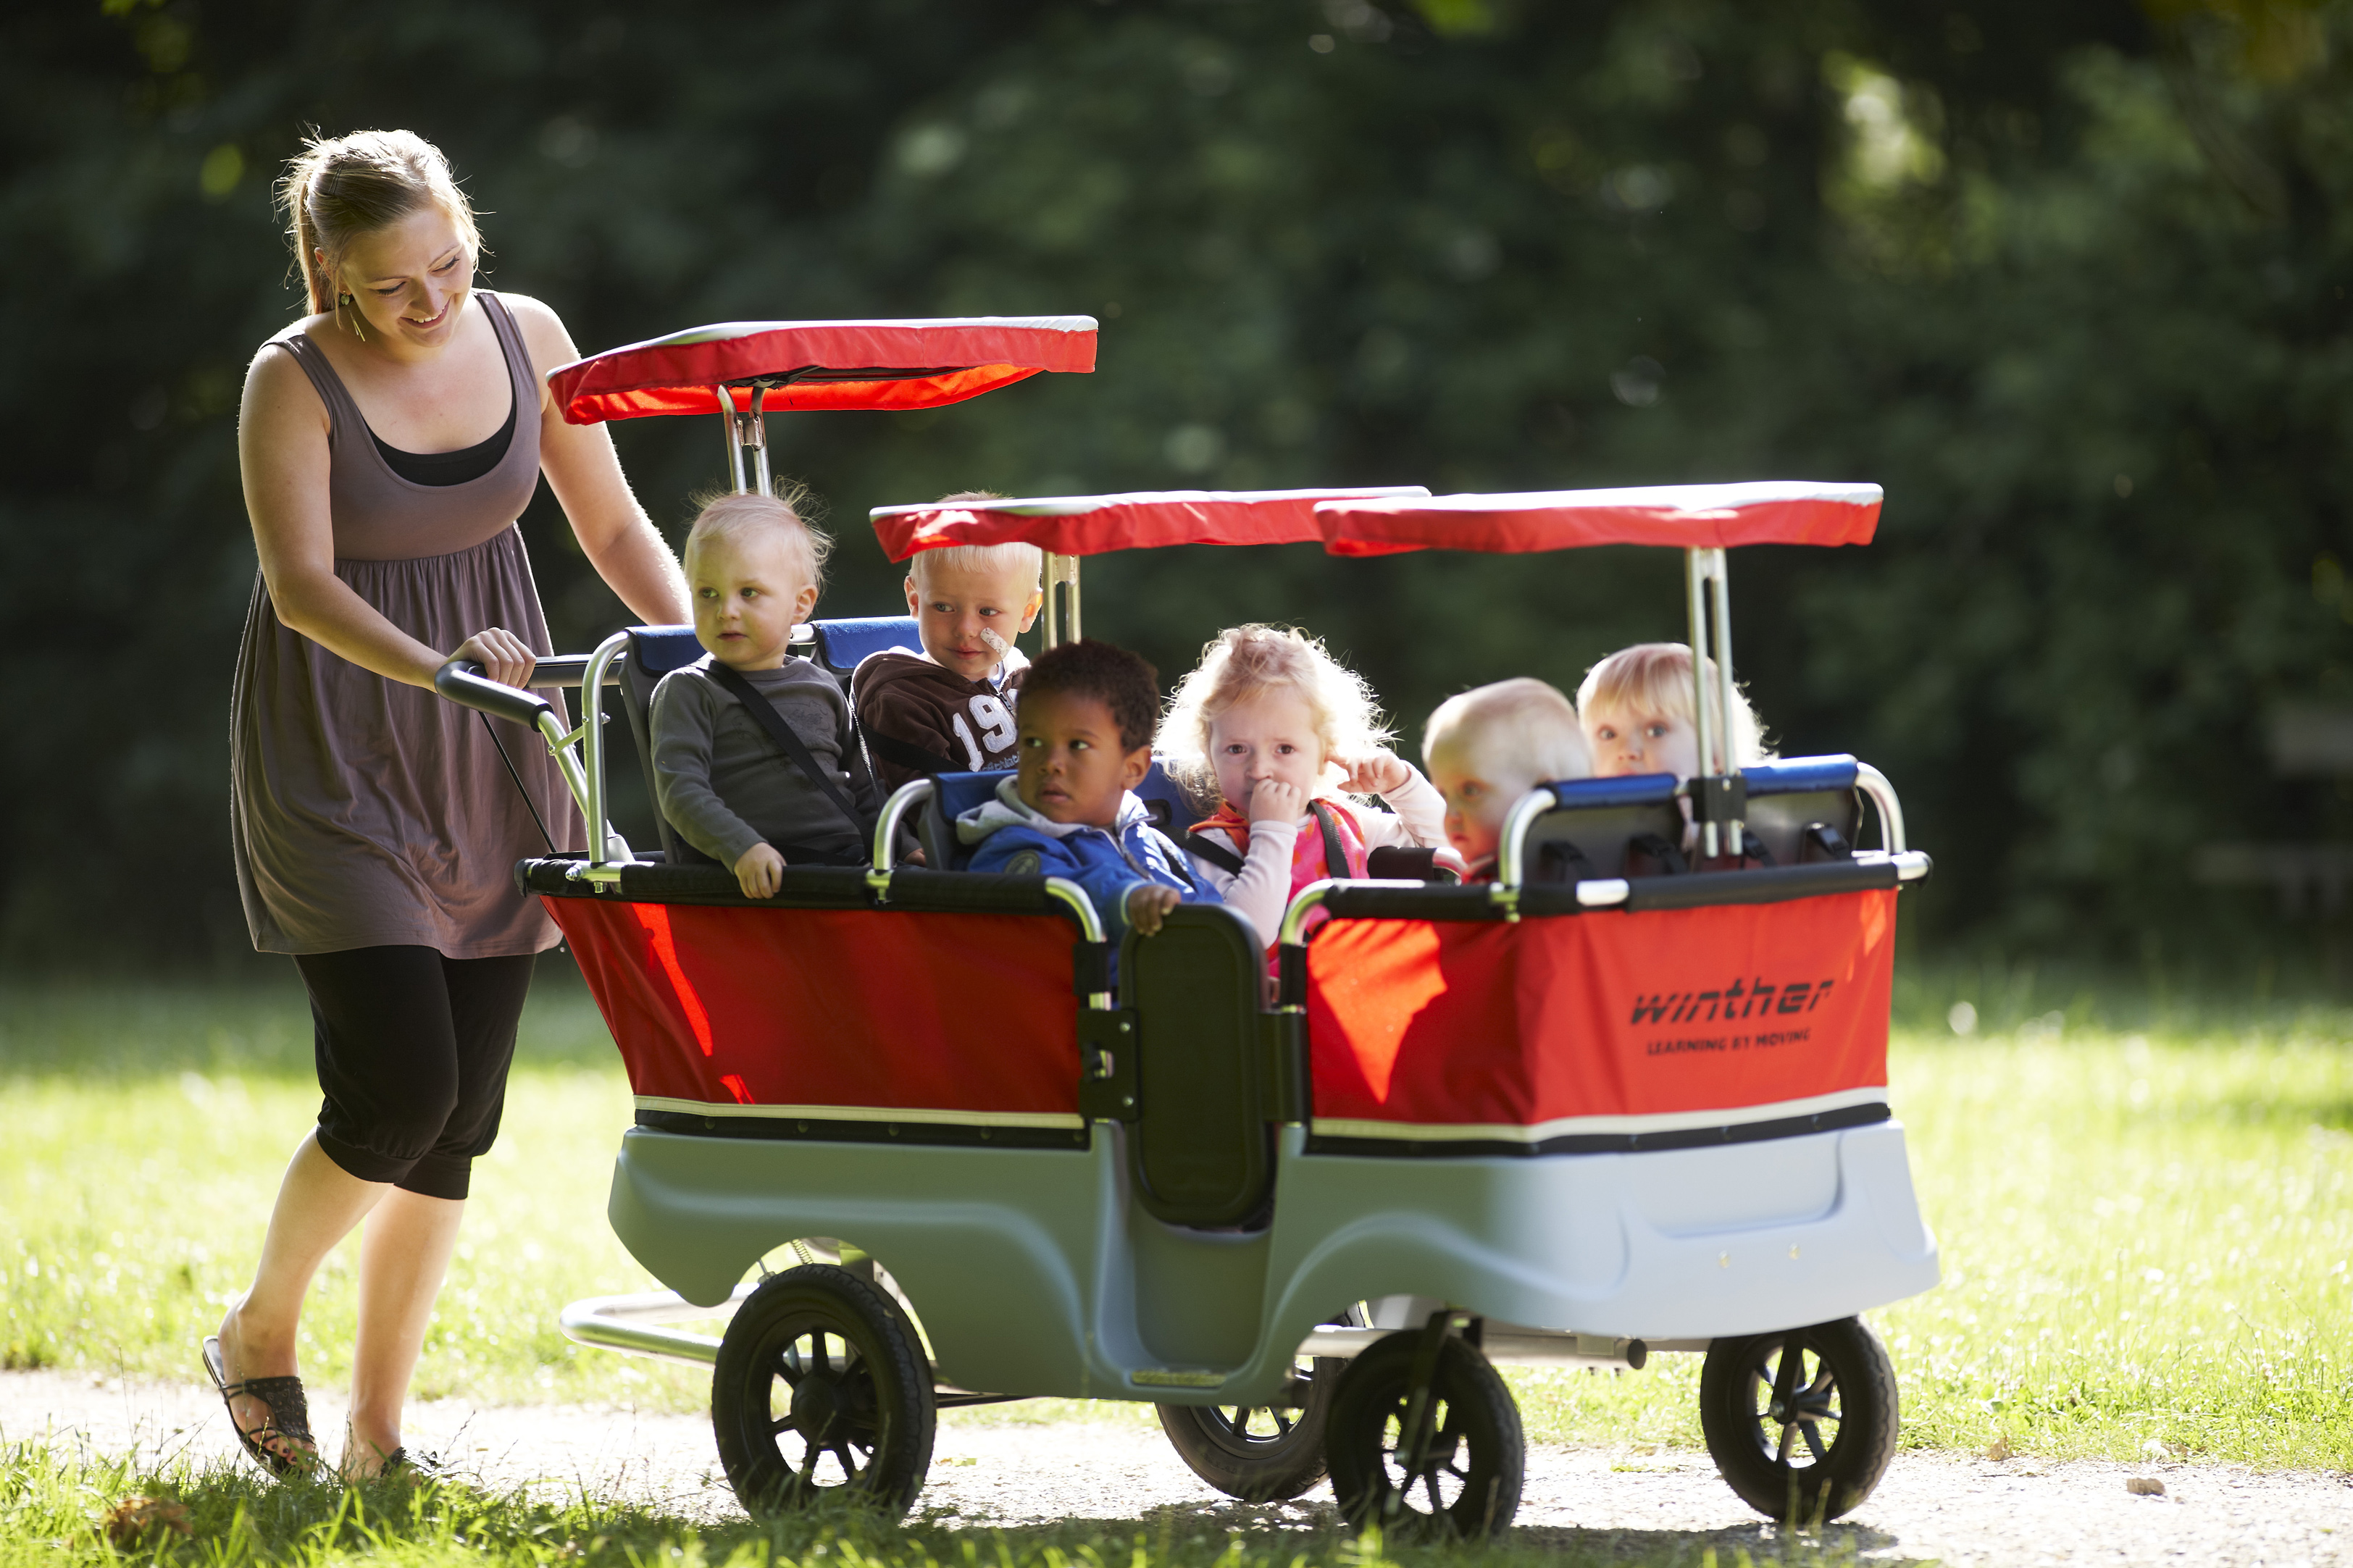 Winther Turtle Kinderbus